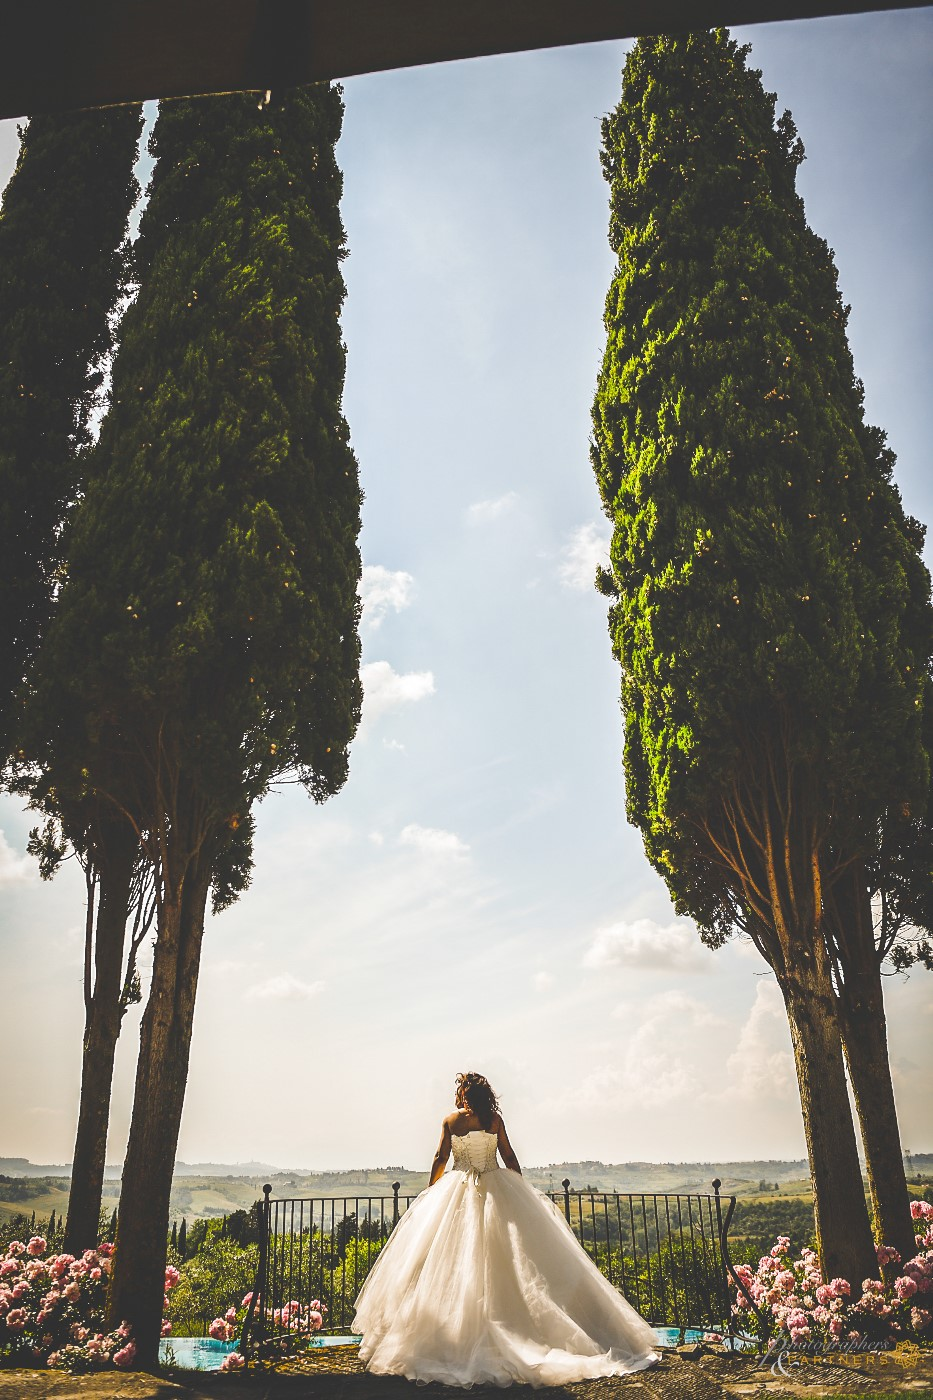 wedding_photograpers_in_tuscany_16.jpg